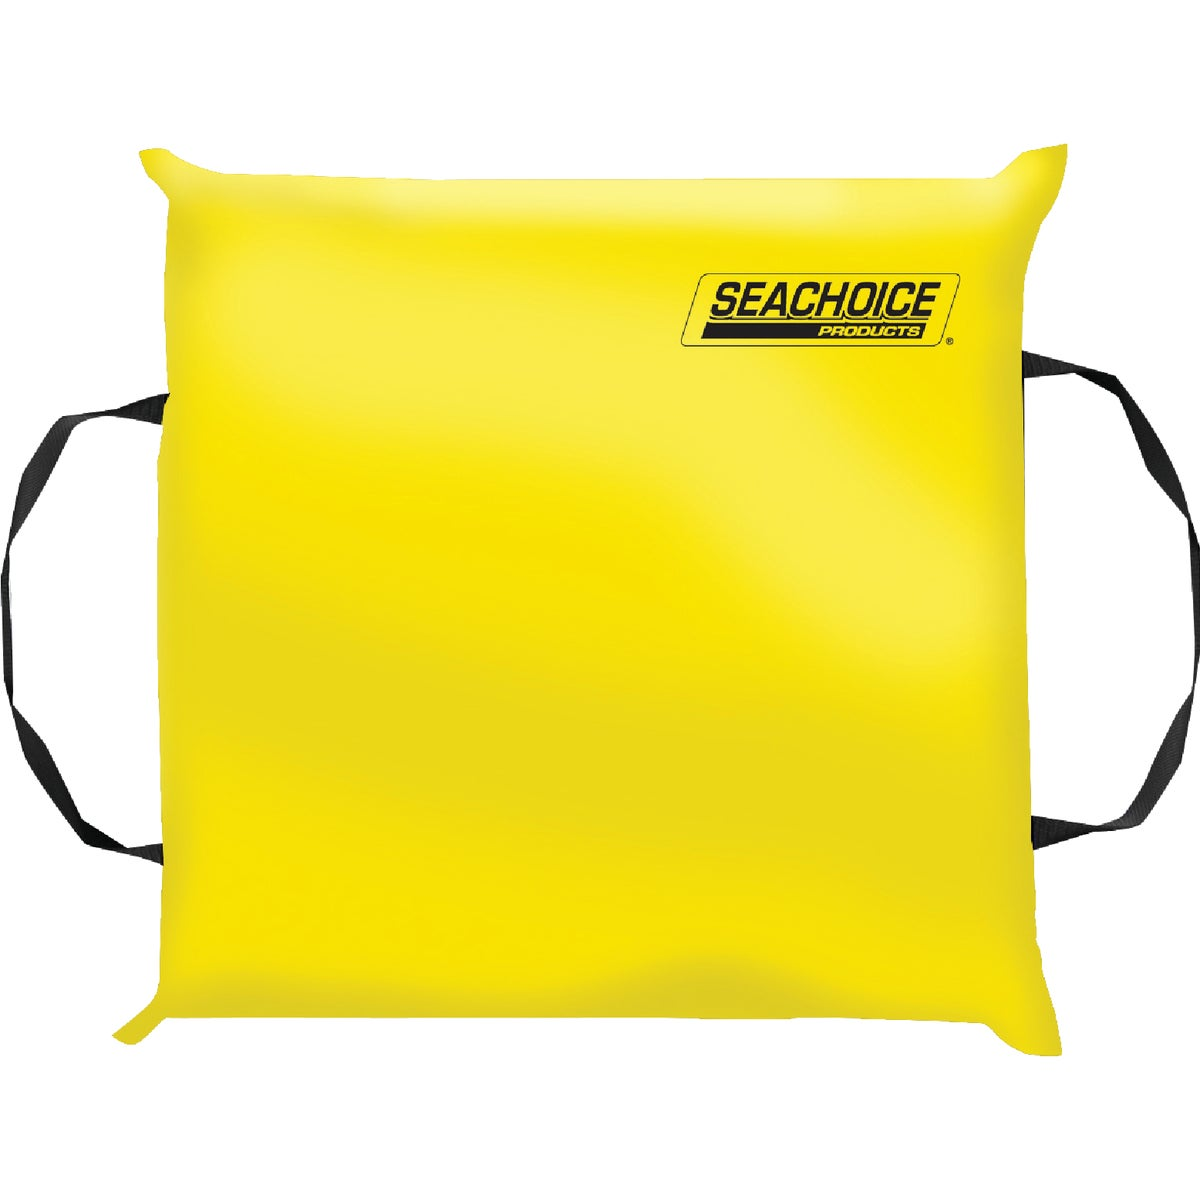 YELLOW THROW CUSHION